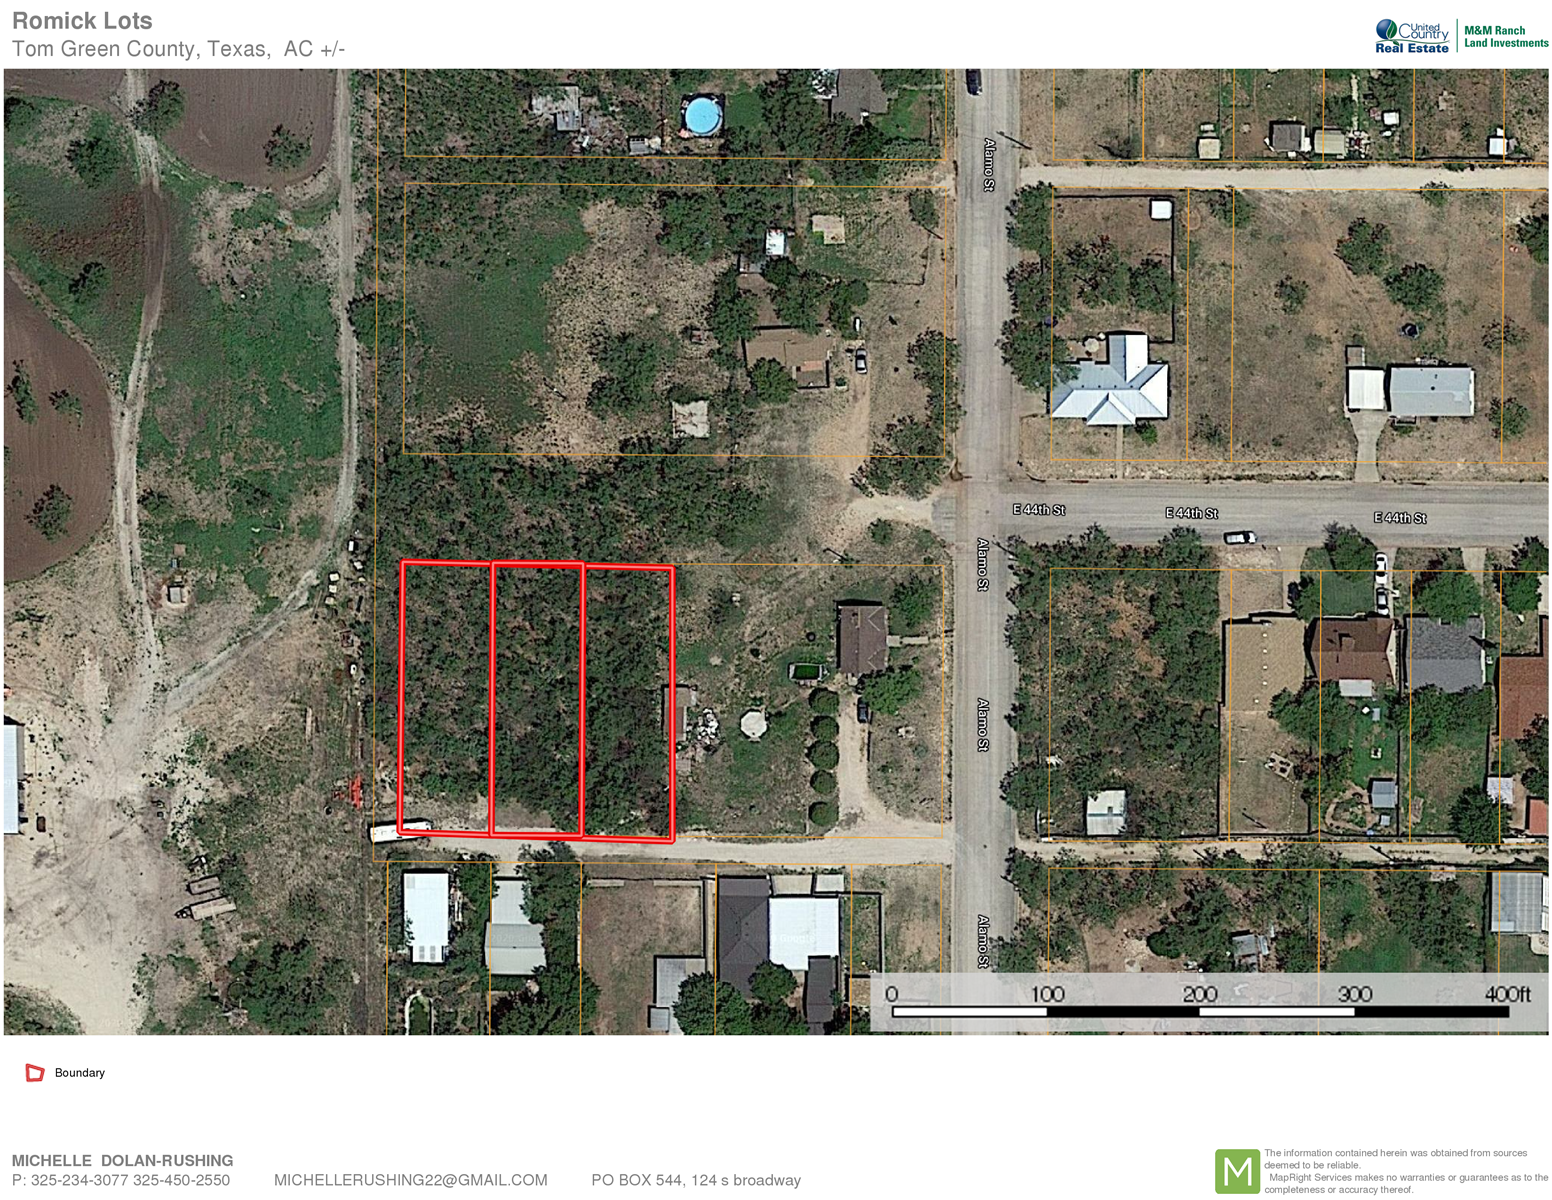 Tom Green County  Residential Land For Sale in City Limits